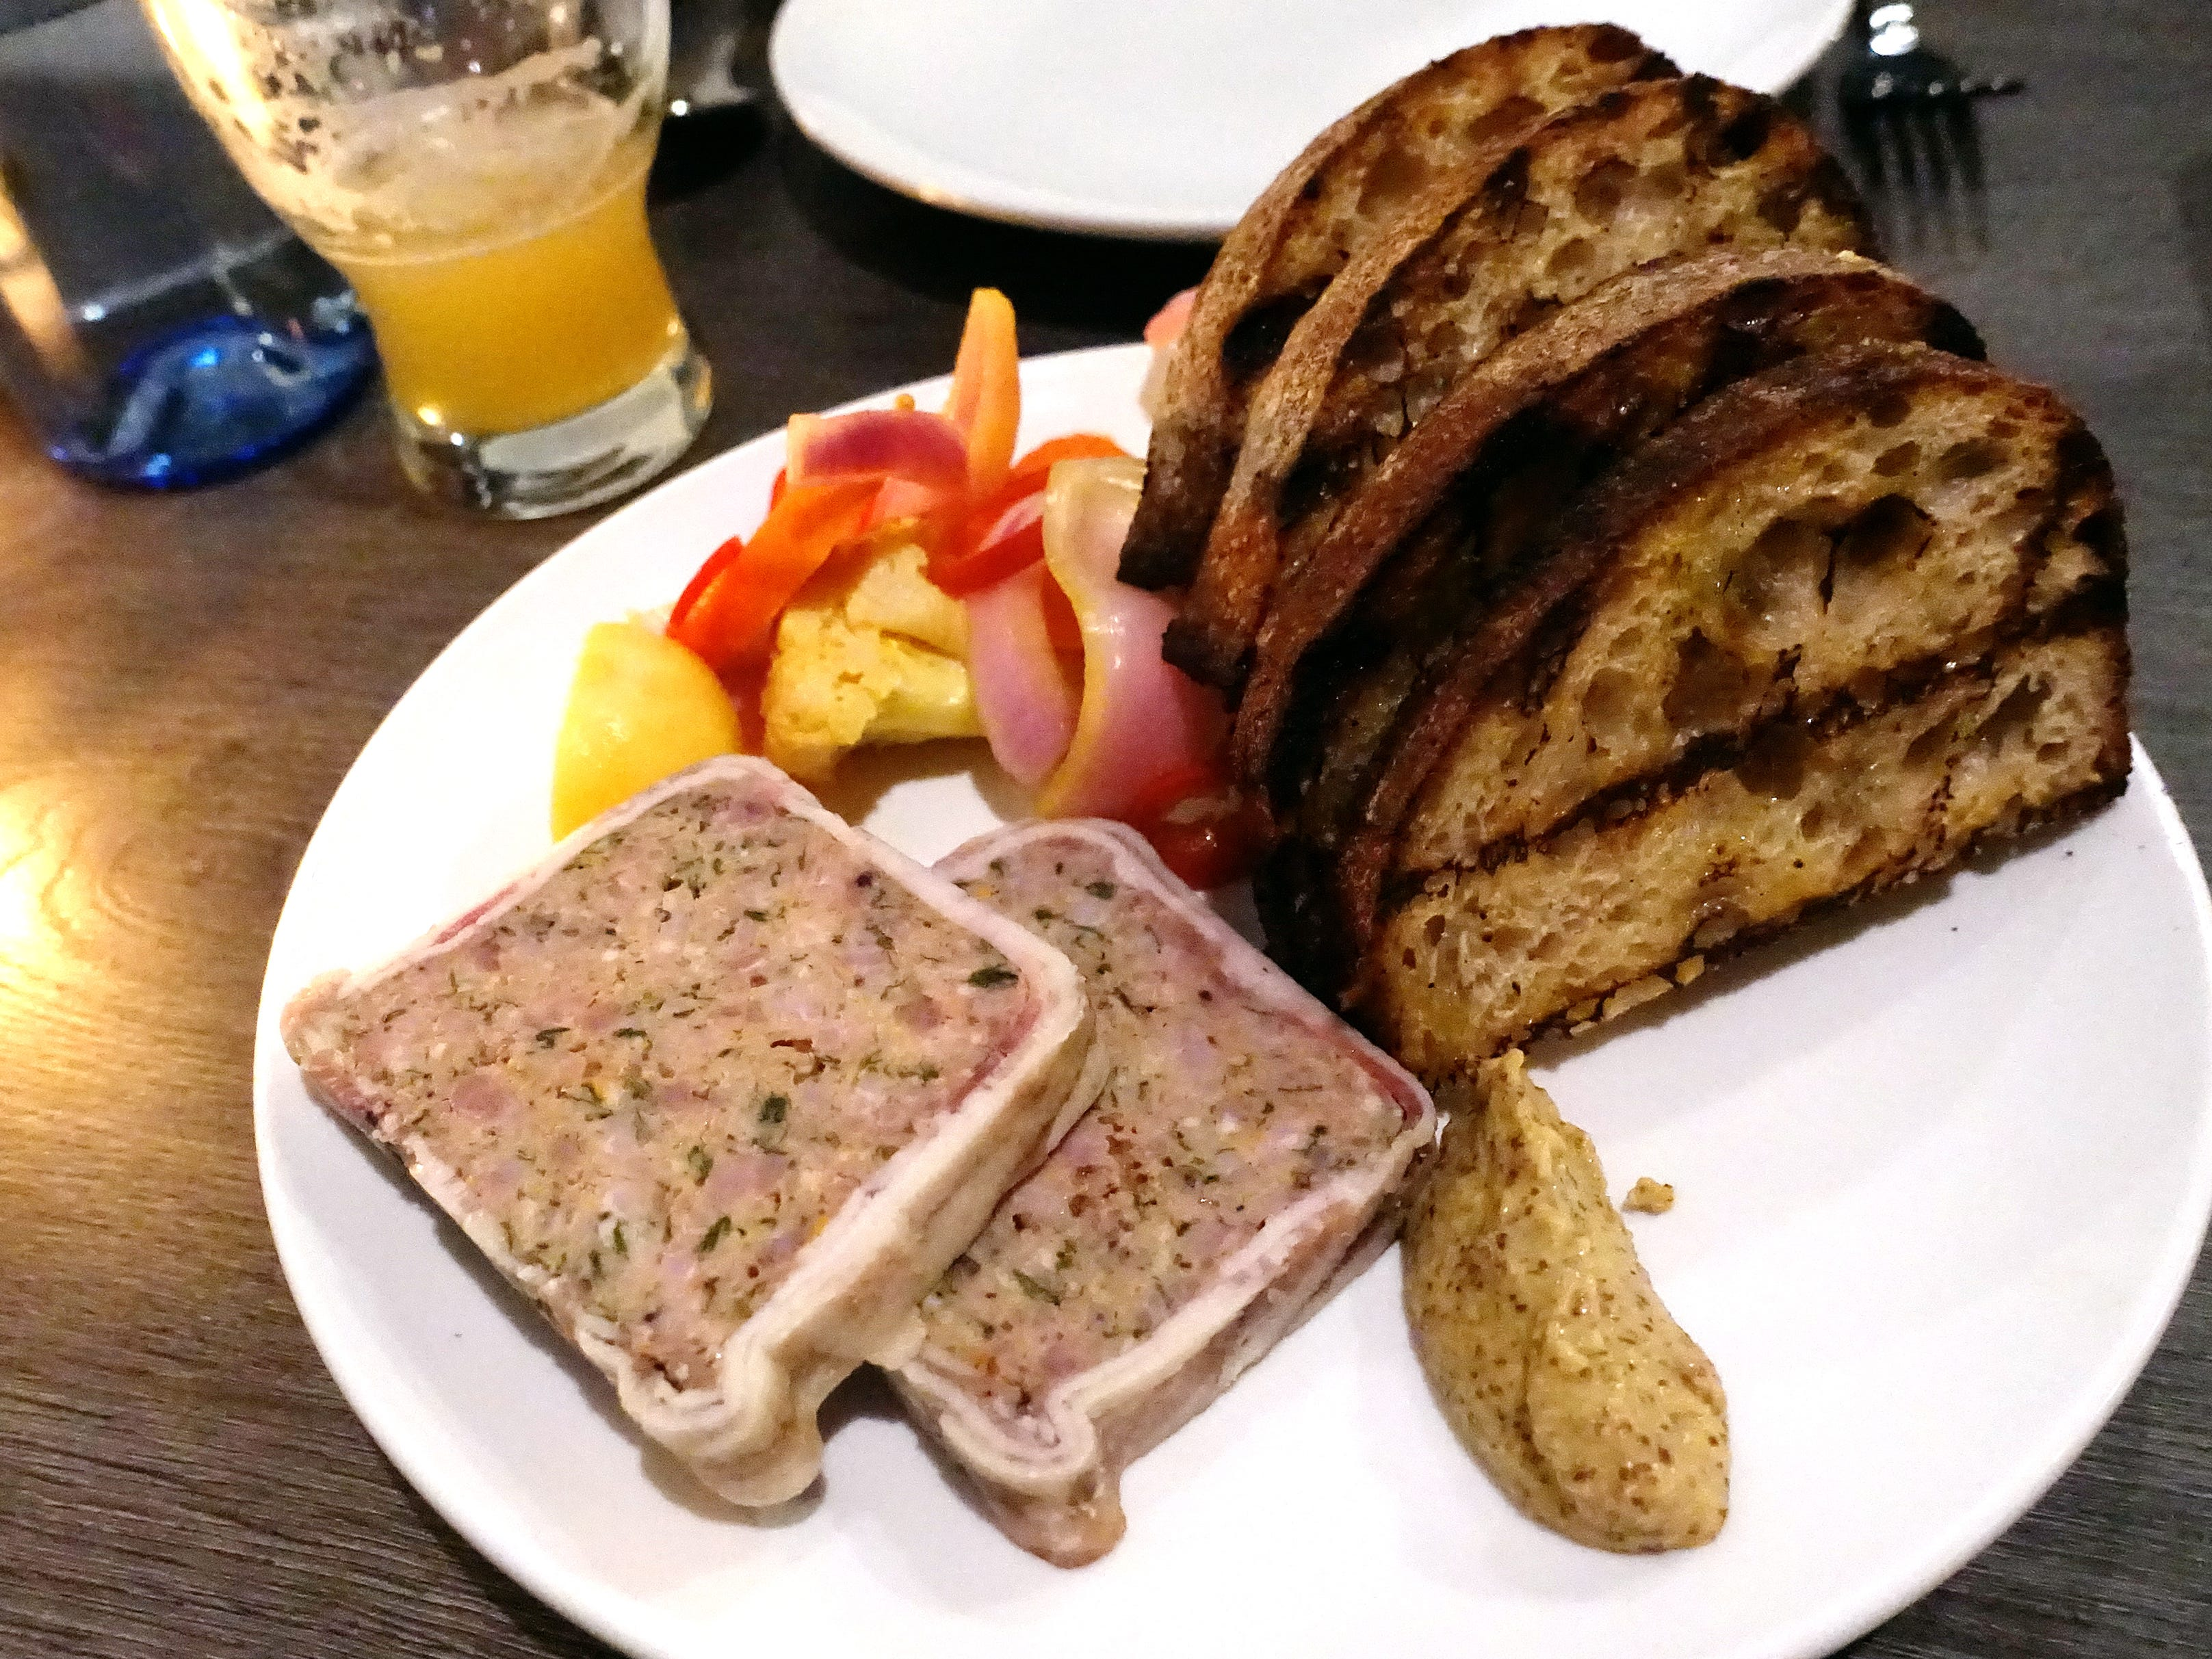 Butcher's country pate with house pickles and beer mustard at Hush Public House in Scottsdale.